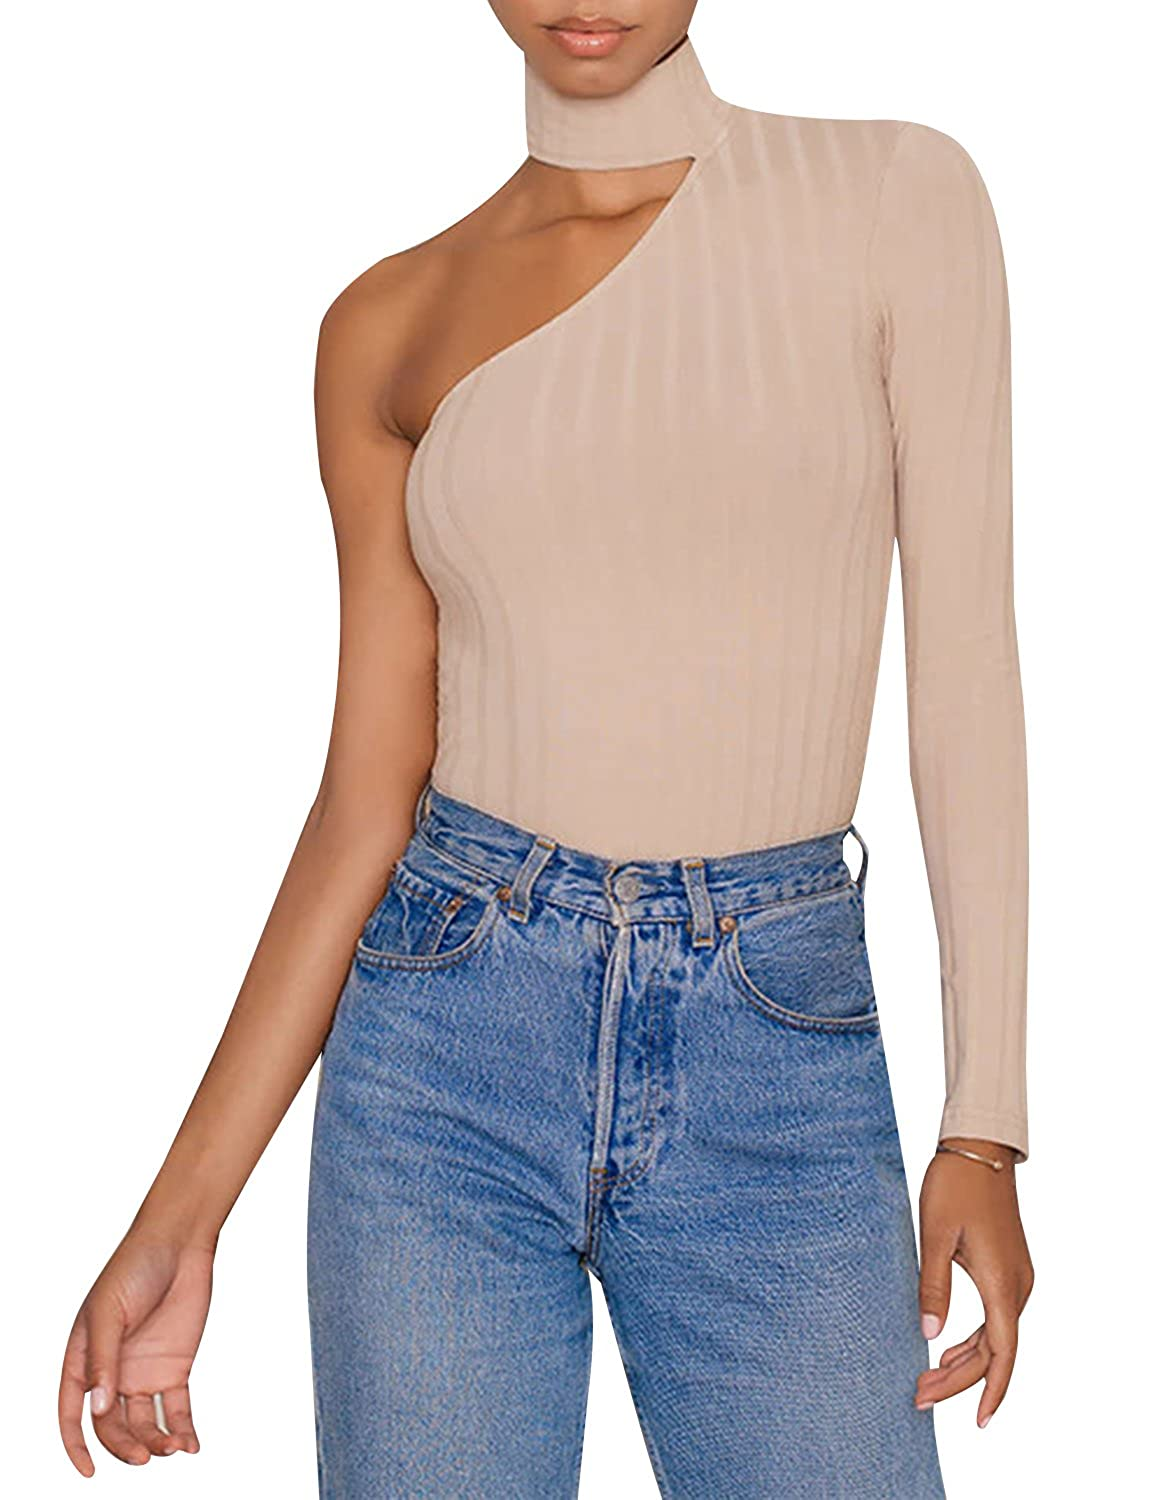 HaoDuoYi Womens One Shoulder Cut Out High Neck Knit Top Pullover Sweater